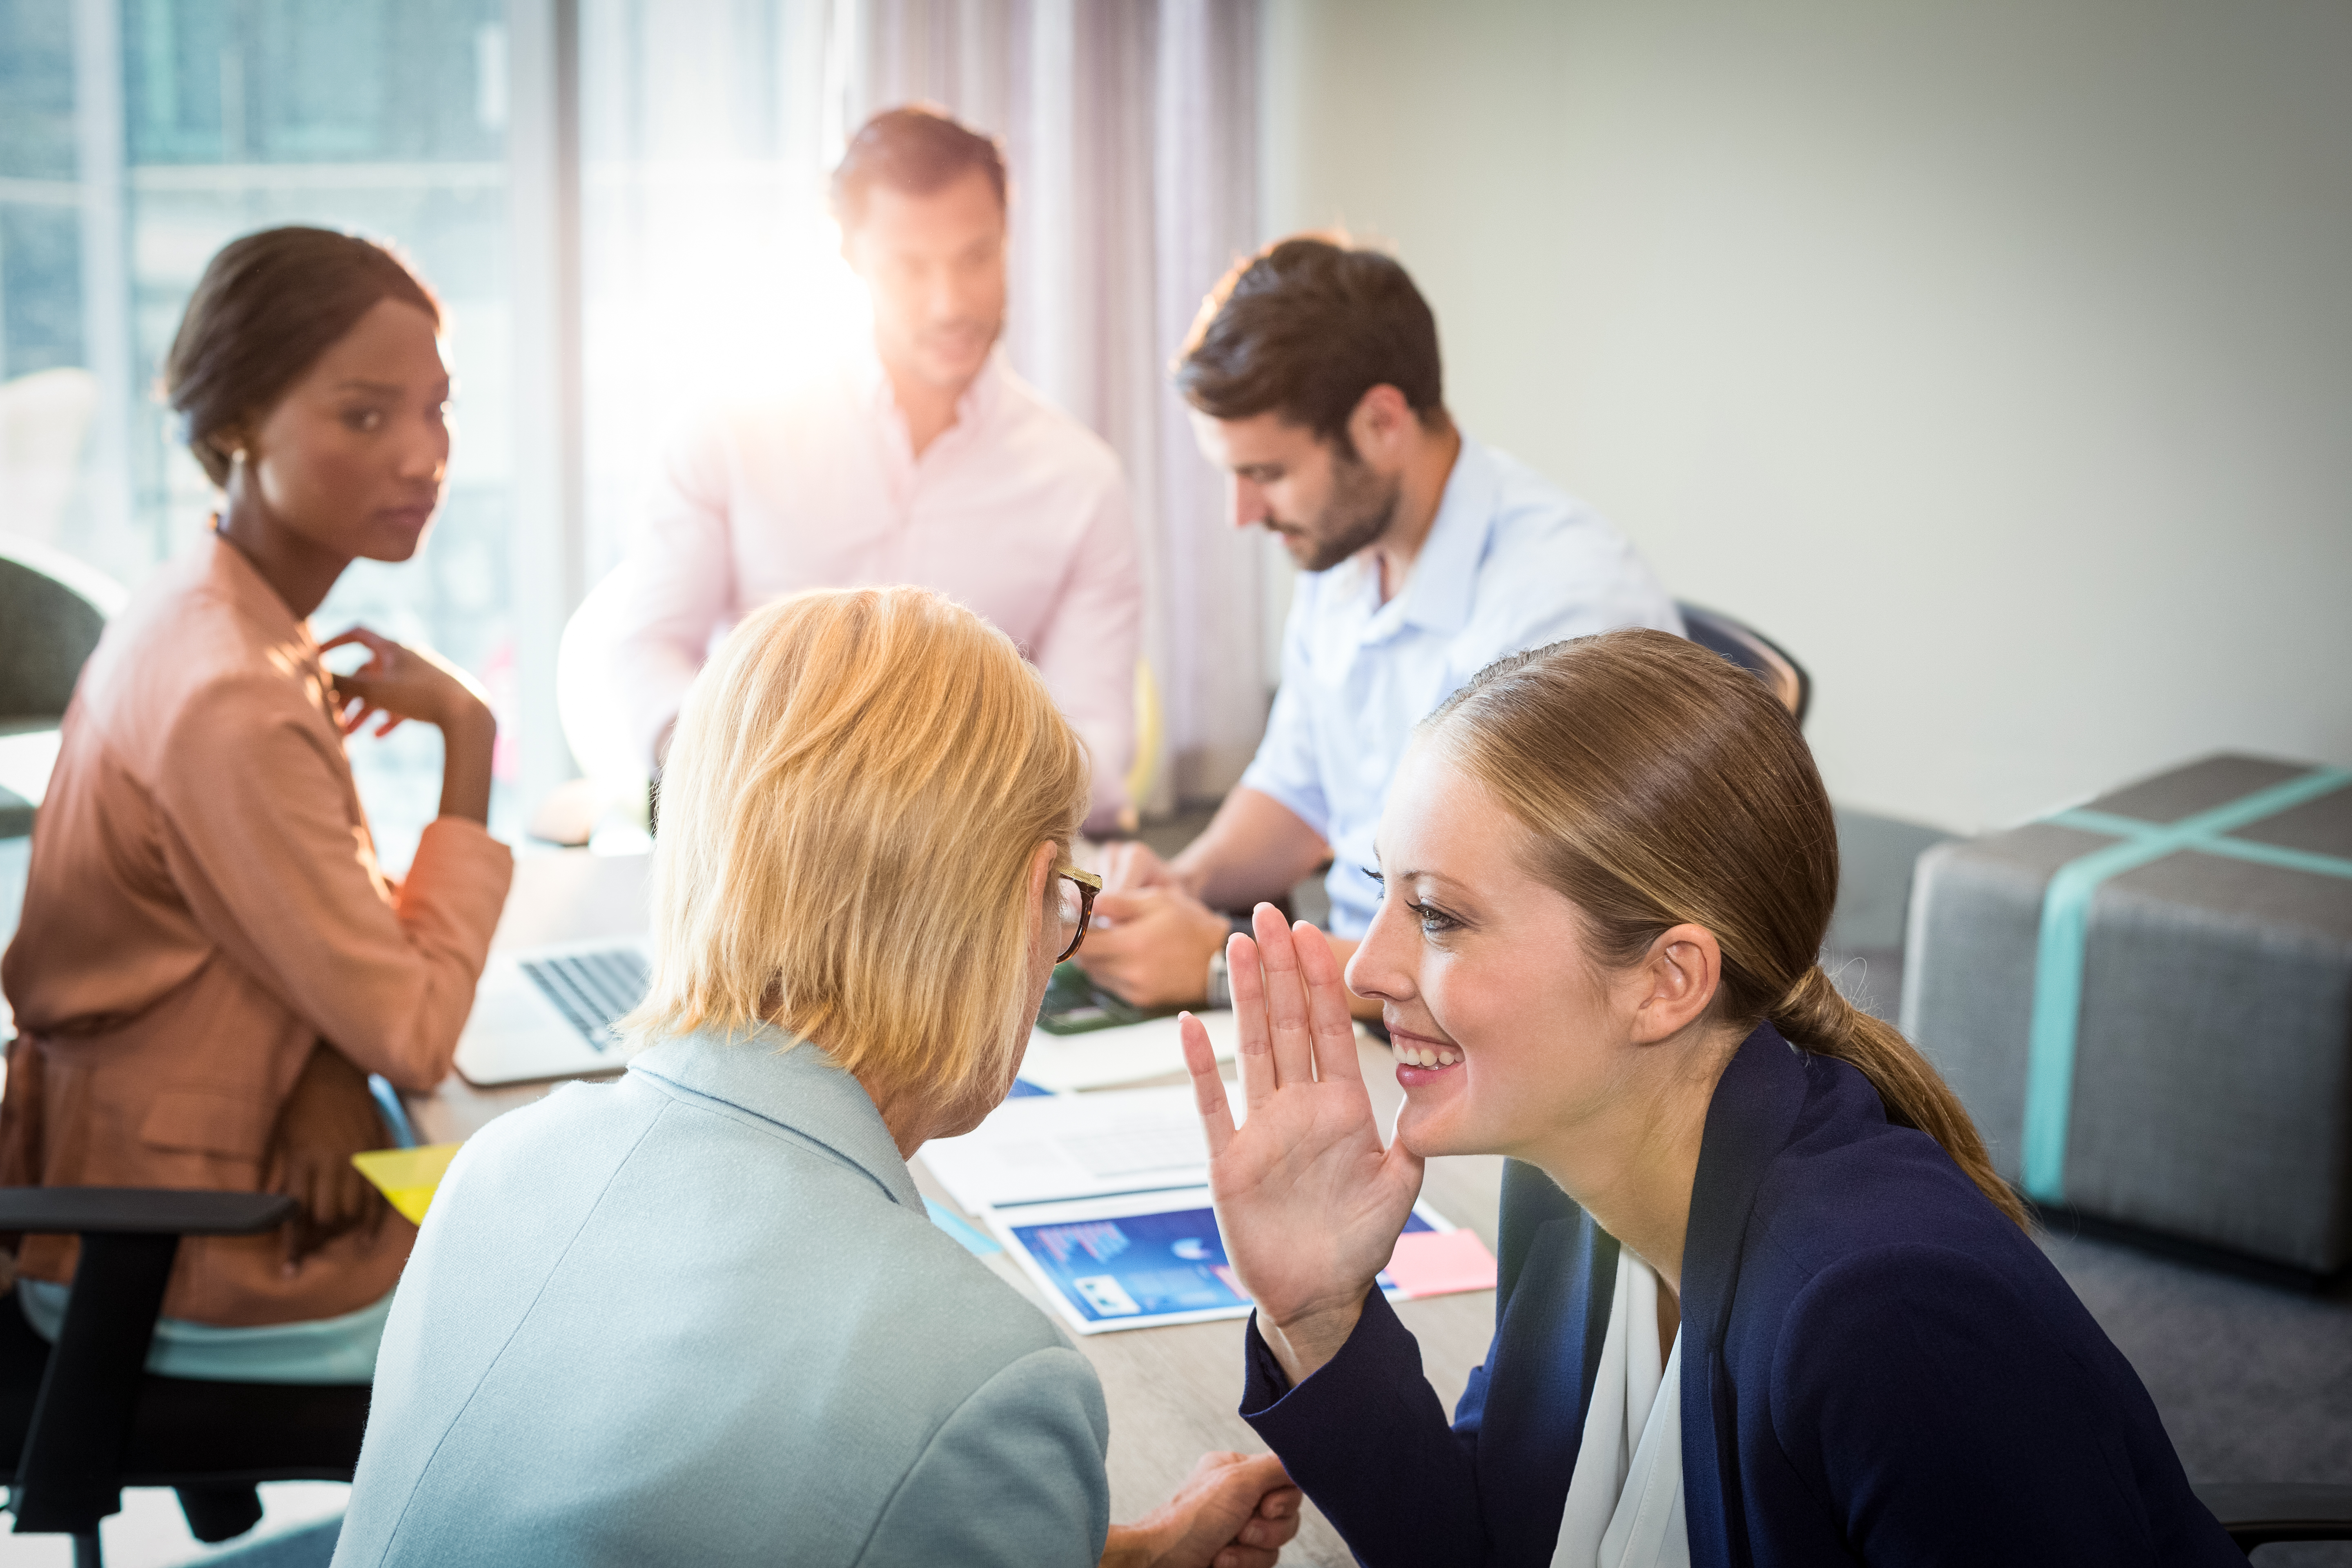 How to Set Boundaries With Coworkers | Career Trend